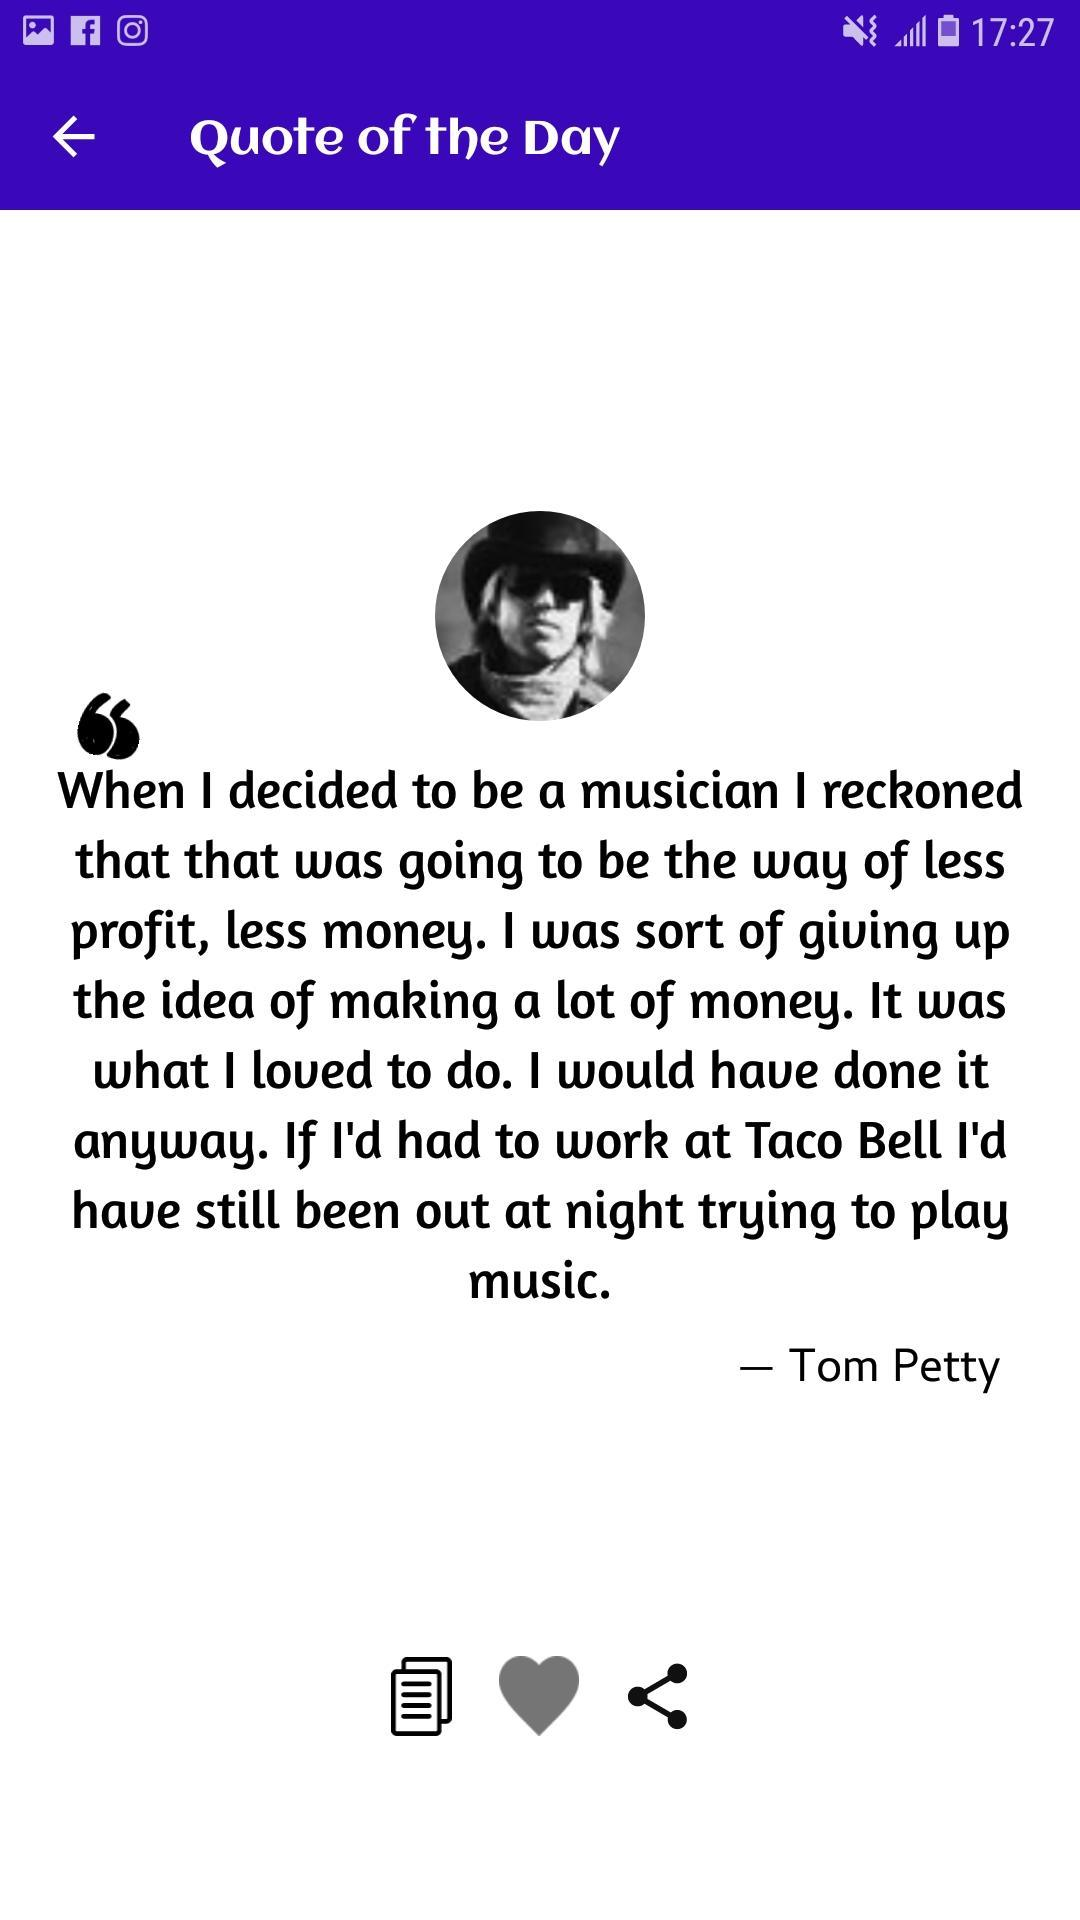 Tom Petty Quotes, Lyrics and Facts for Android - APK Download